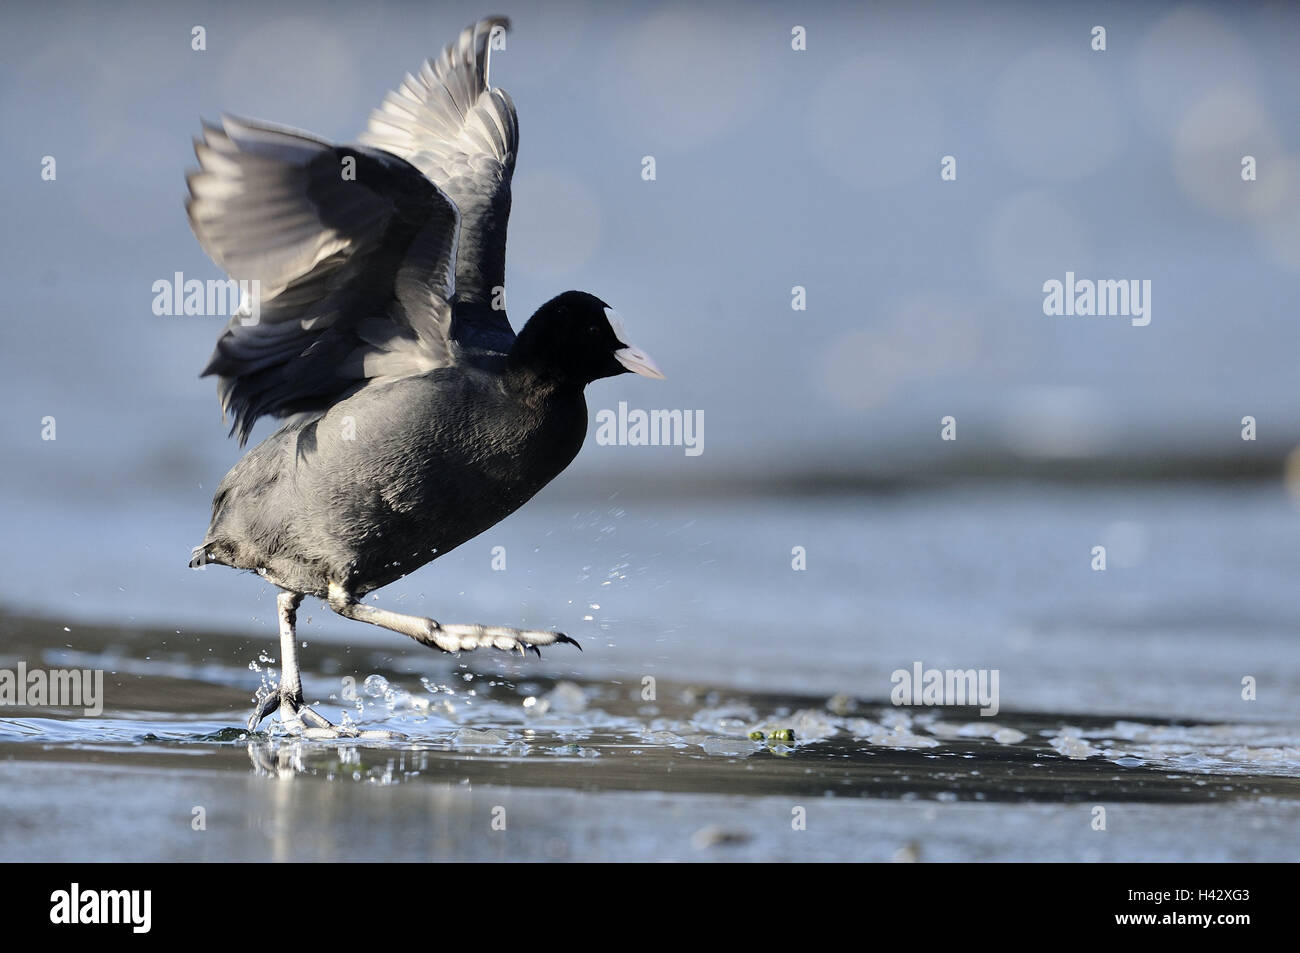 Coot, Fulica atra, water, shallowly, wade, side view, nature, animal, bird, wing, flapping of wings, plumage, legs, - Stock Image